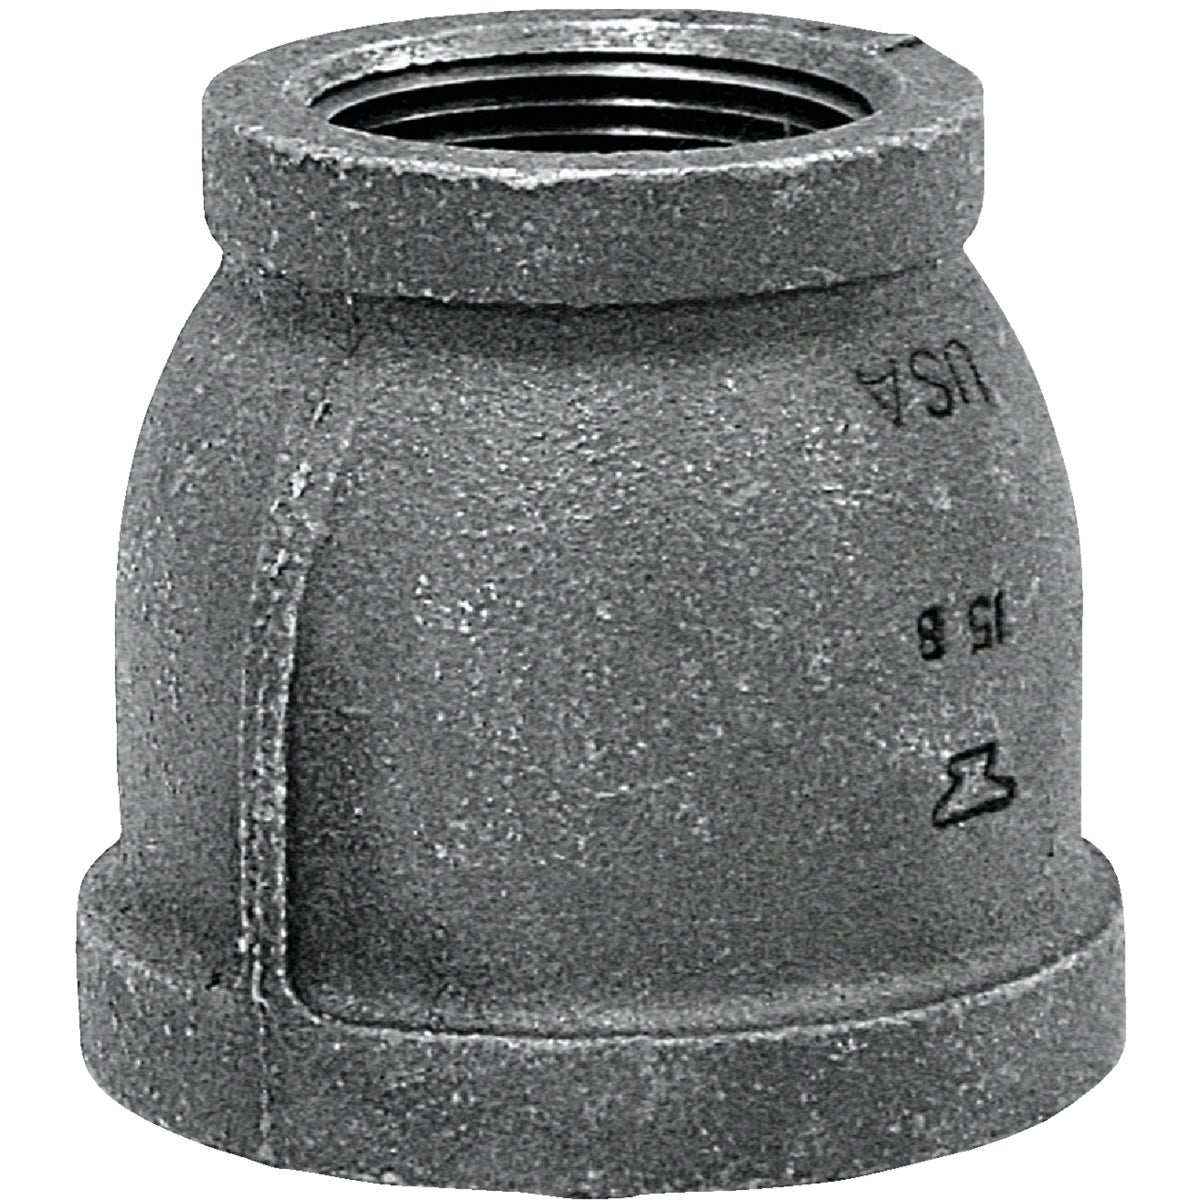 1-1/2X1-1/4 BLK COUPLING - 8700134557 by Anvil International